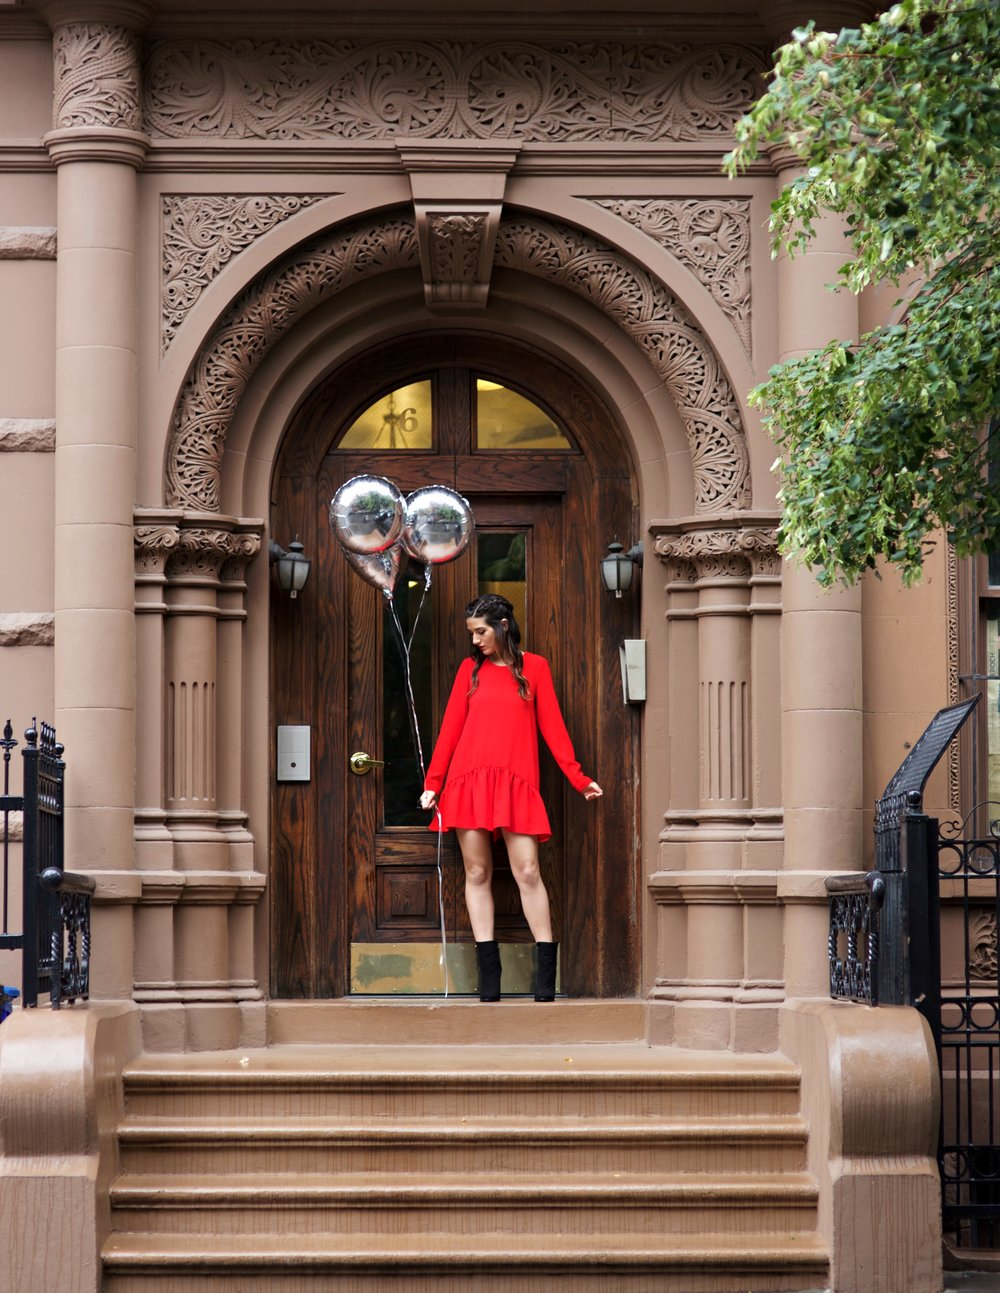 My Birthday Look Red Romper Black Booties Louboutins & Love Fashion Blog NYC Street Style Blogger Esther Santer M4D3 Shoes Trendy Outfit Pretty Beautiful Look What To Wear Shop Silver Photoshoot Balloons Fun City Lifestyle Girl Women Dress Hair Braids.jpg